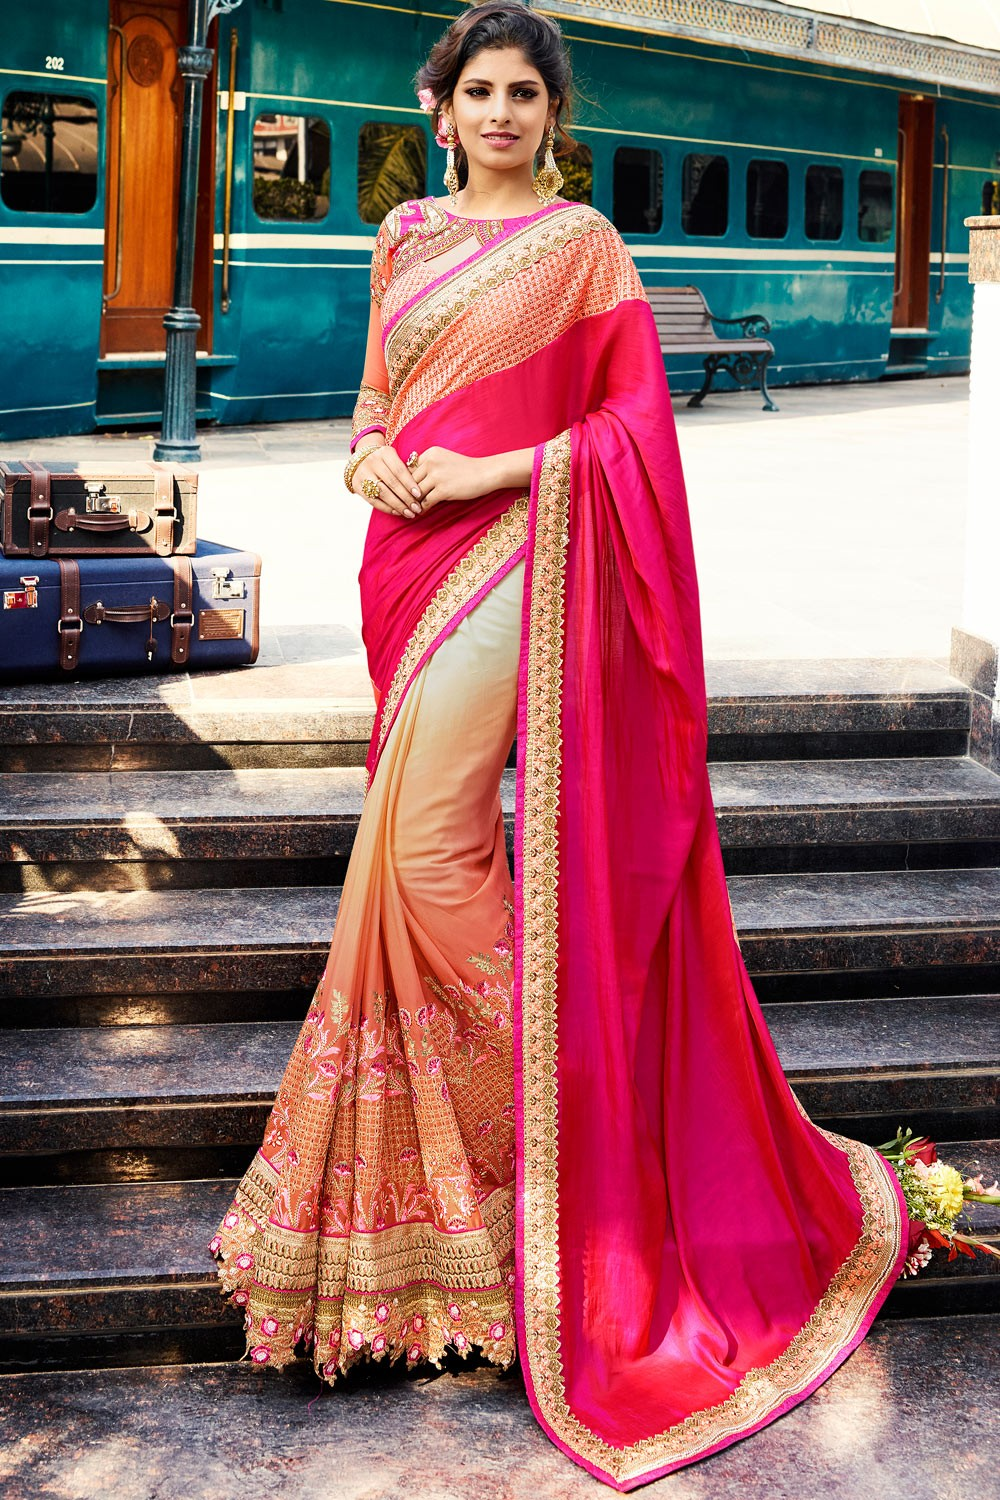 Paaneri Designer Shaded Rani With Peach Color Embroidery Art Silk & Chiffon Saree With Zari Border Pallu-Product Code-17119701001